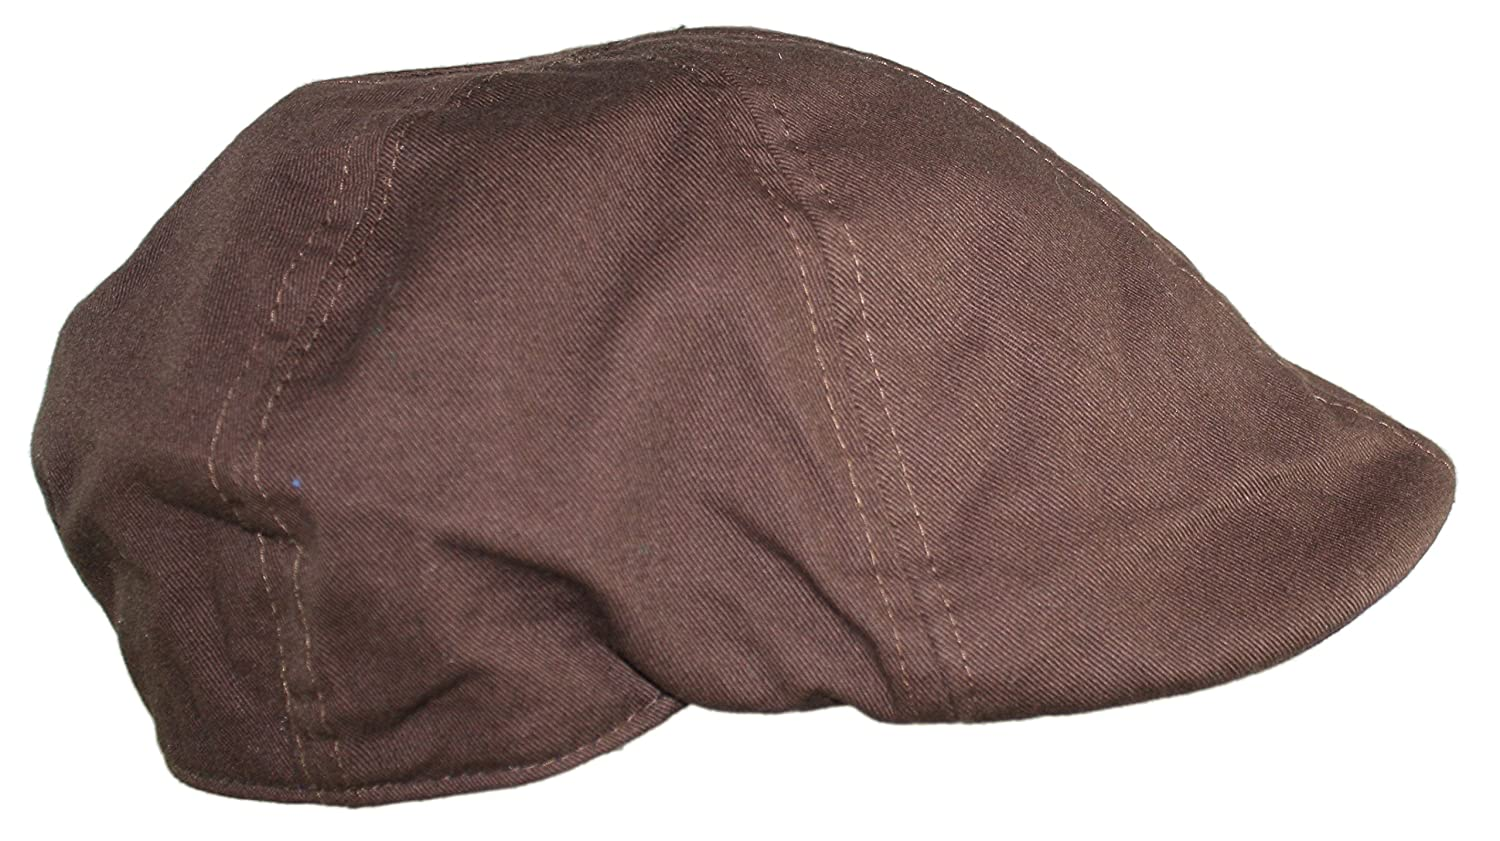 Ted and Jack Cotton Adjustable Duckbill Driving Cap with Paisley Lining